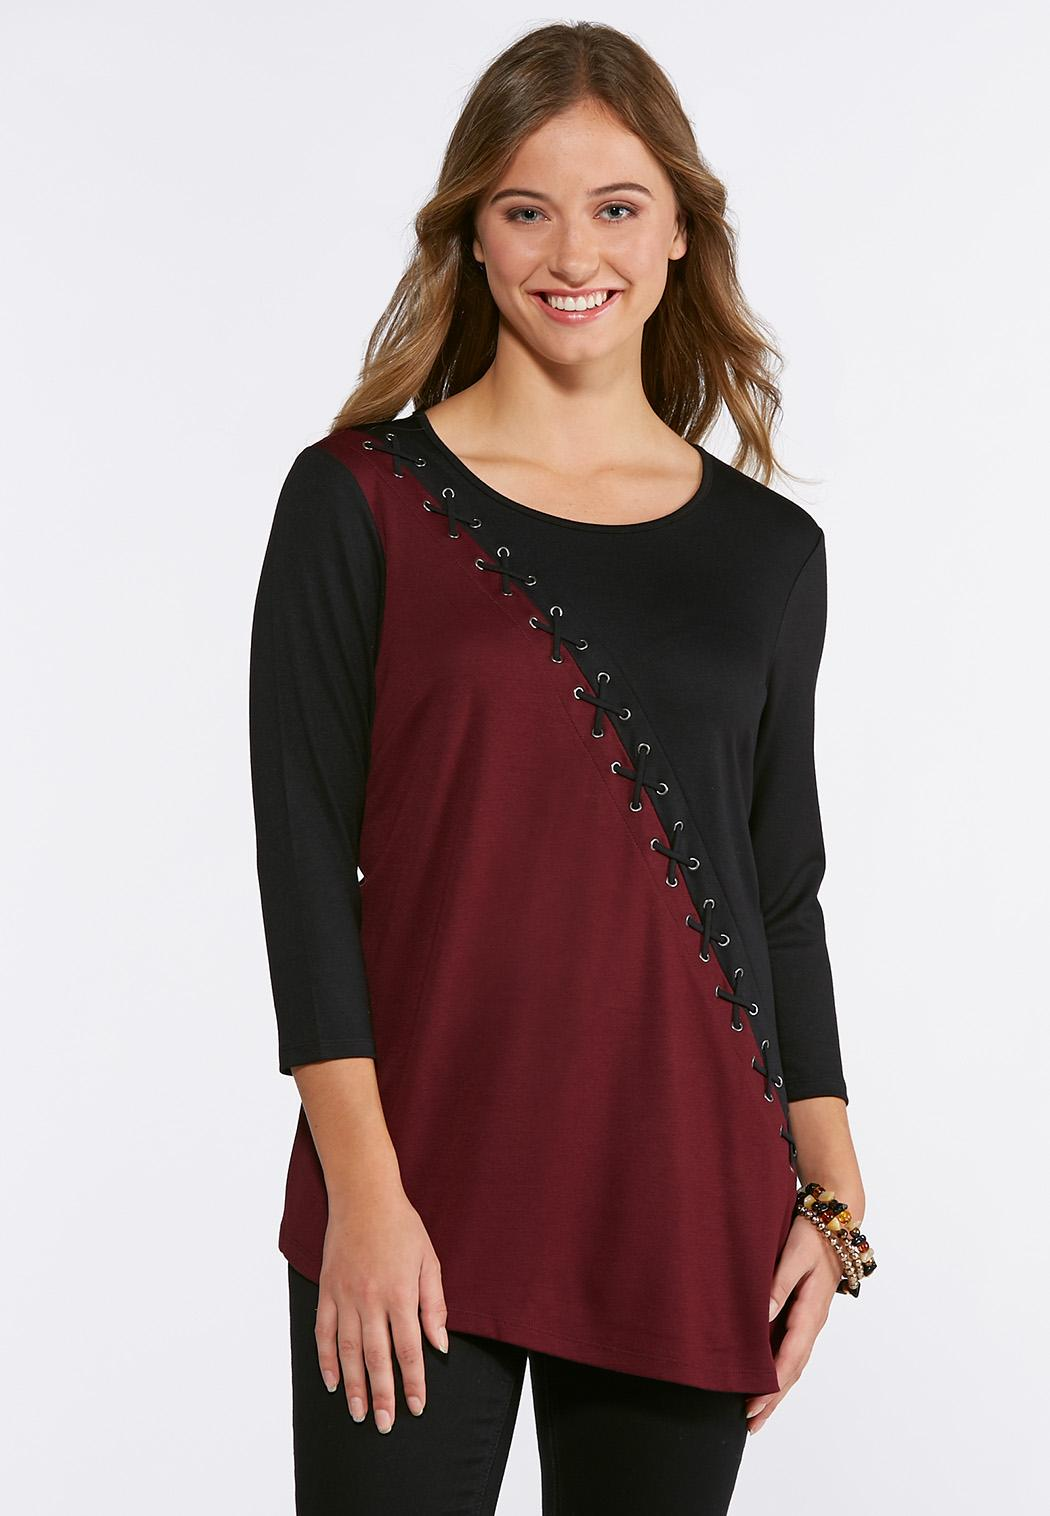 Ponte Lace Up Top Tees Knit Tops Cato Fashions